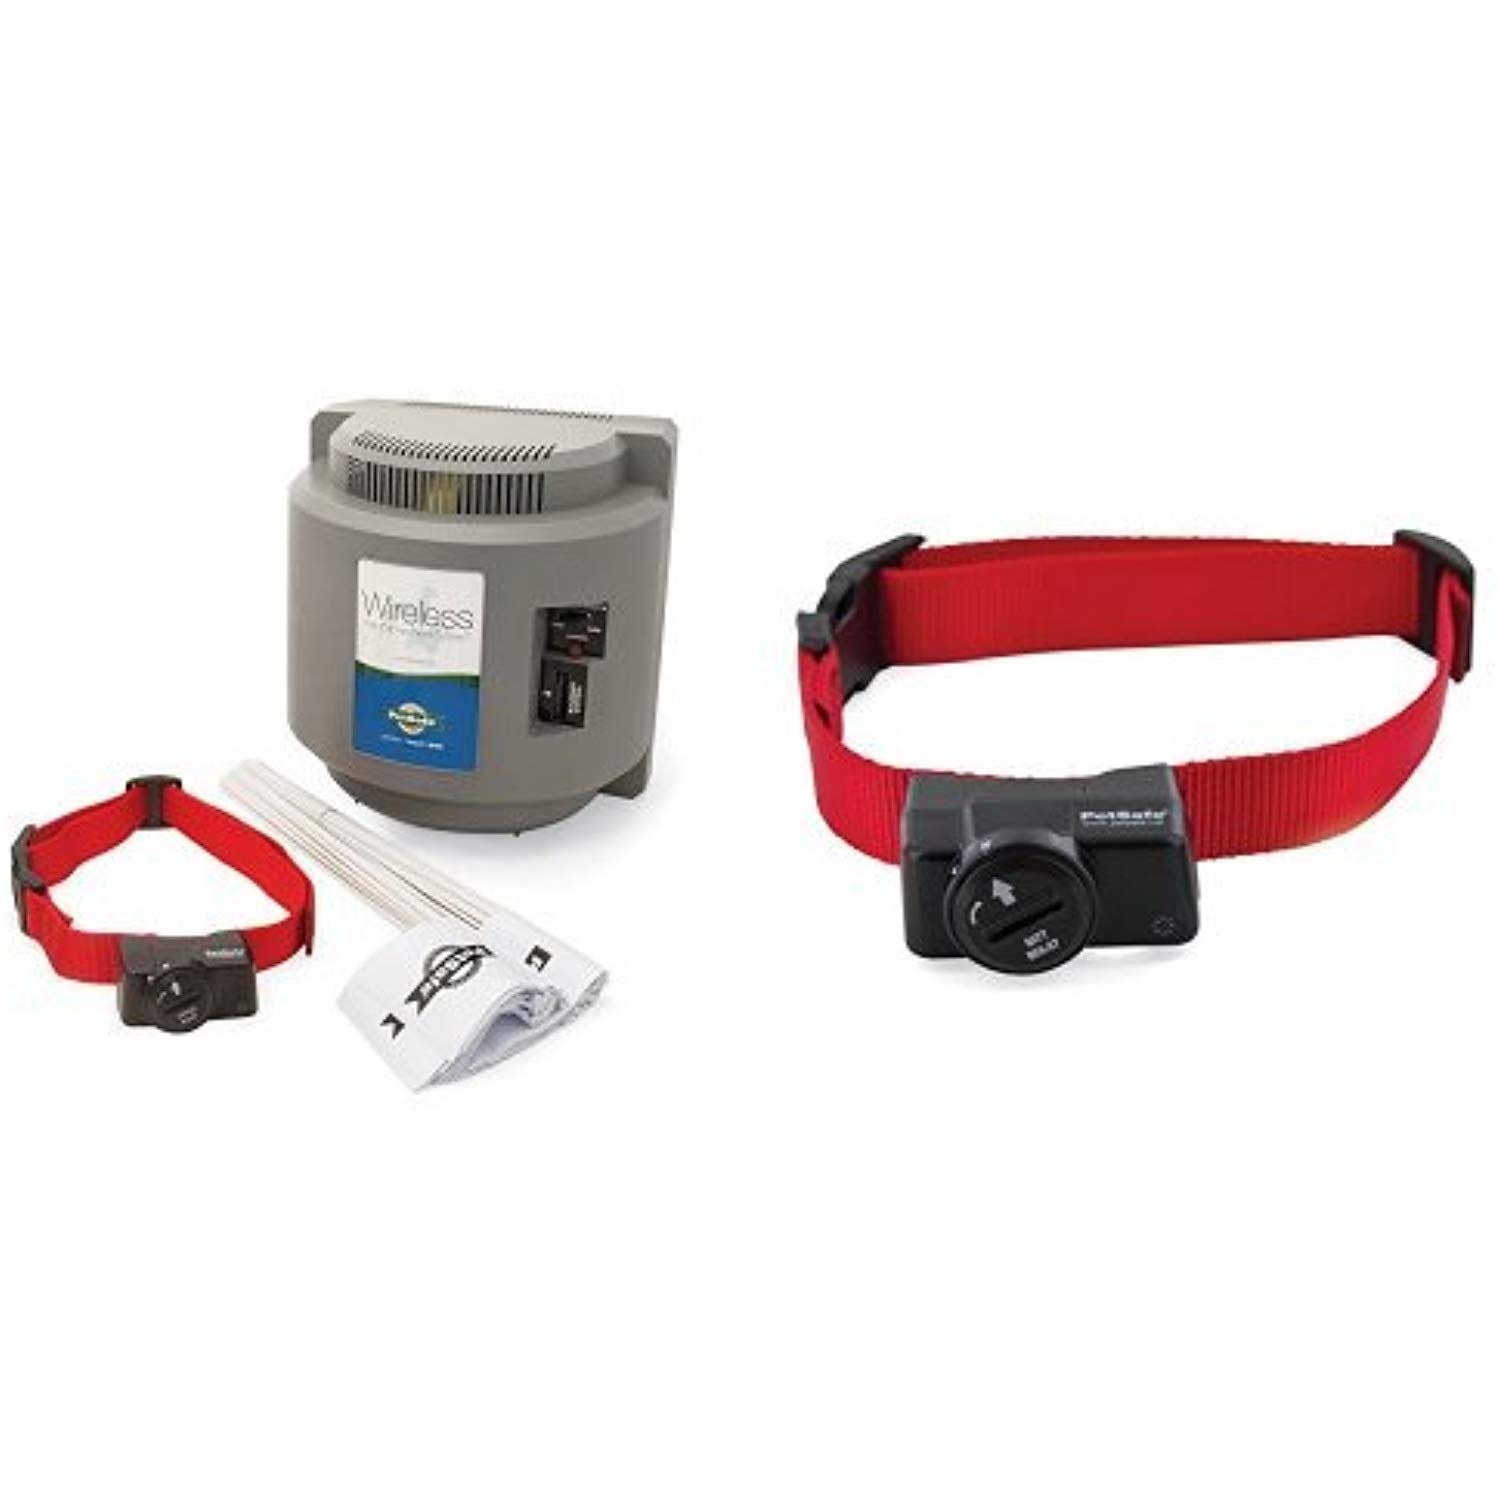 Petsafe Wireless Pet Containment System And Petsafe Wireless Pet Containment System Receiver Collar Bundle Find Out More About The G With Images Wireless Pets Receiver